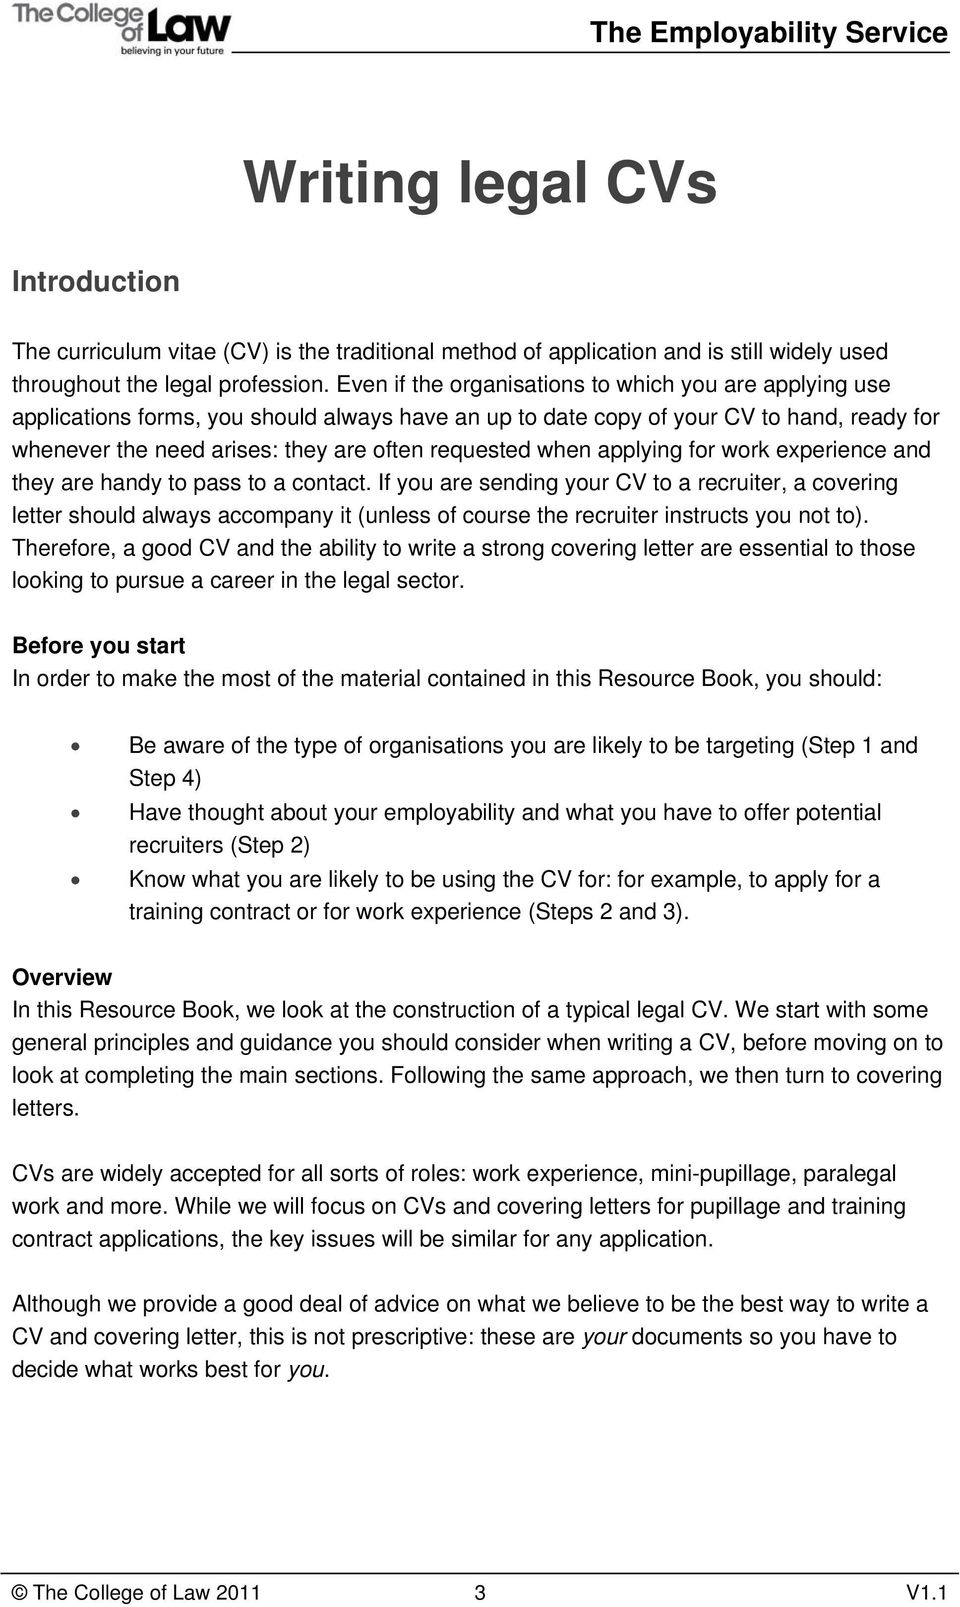 Step 6 Writing Legal CVs And Covering Letters PDF Free